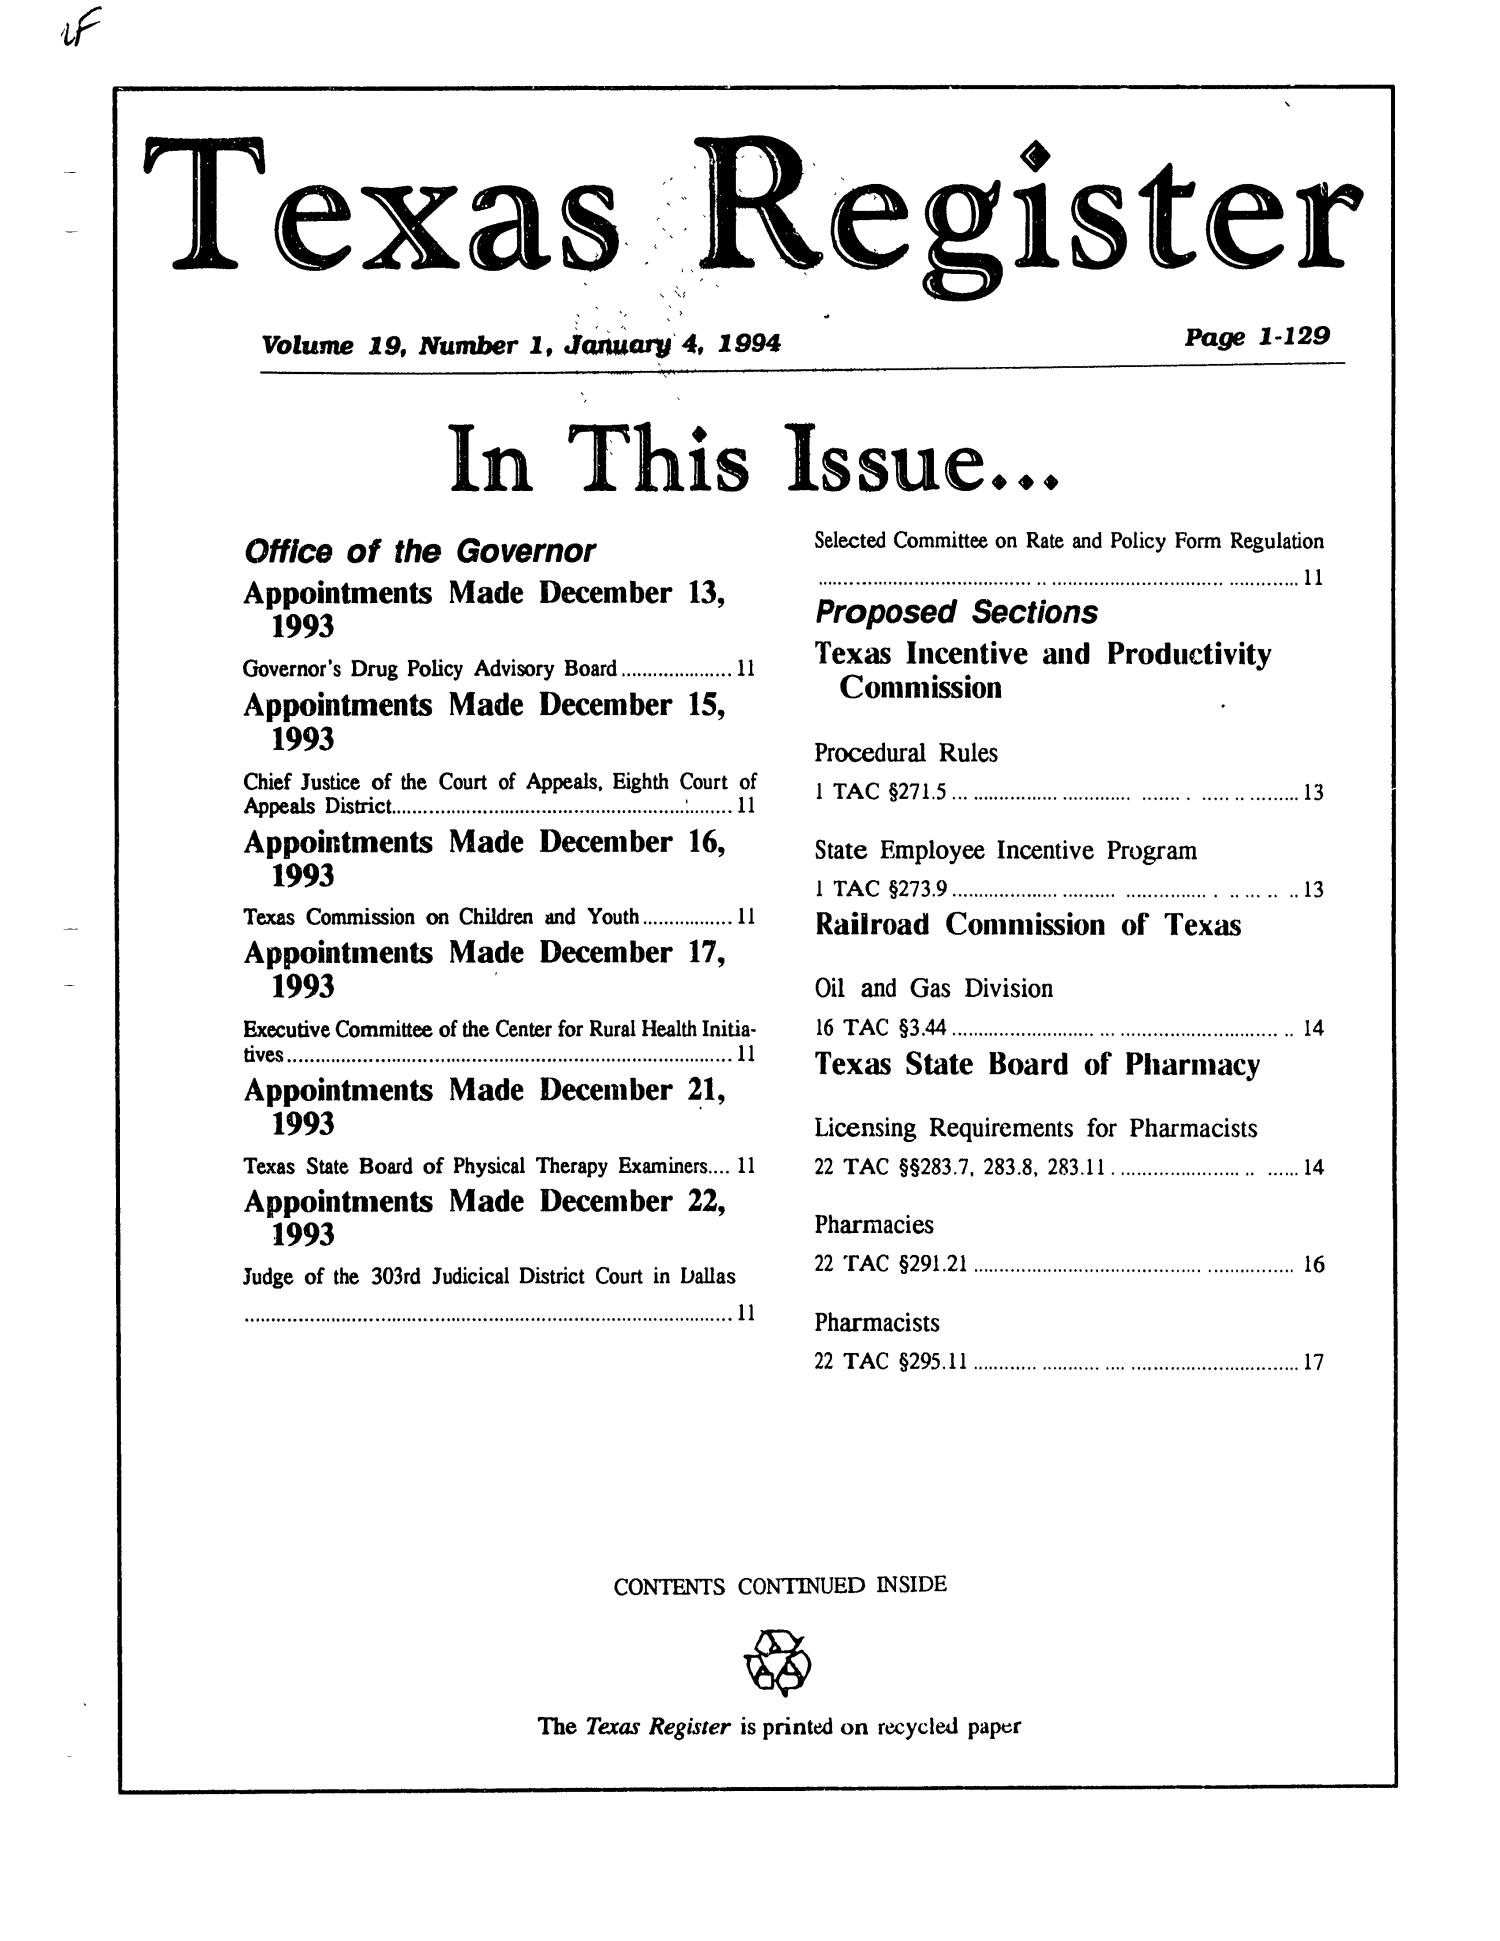 Texas Register, Volume 19, Number 1, Pages 1-129, January 4, 1994                                                                                                      Title Page